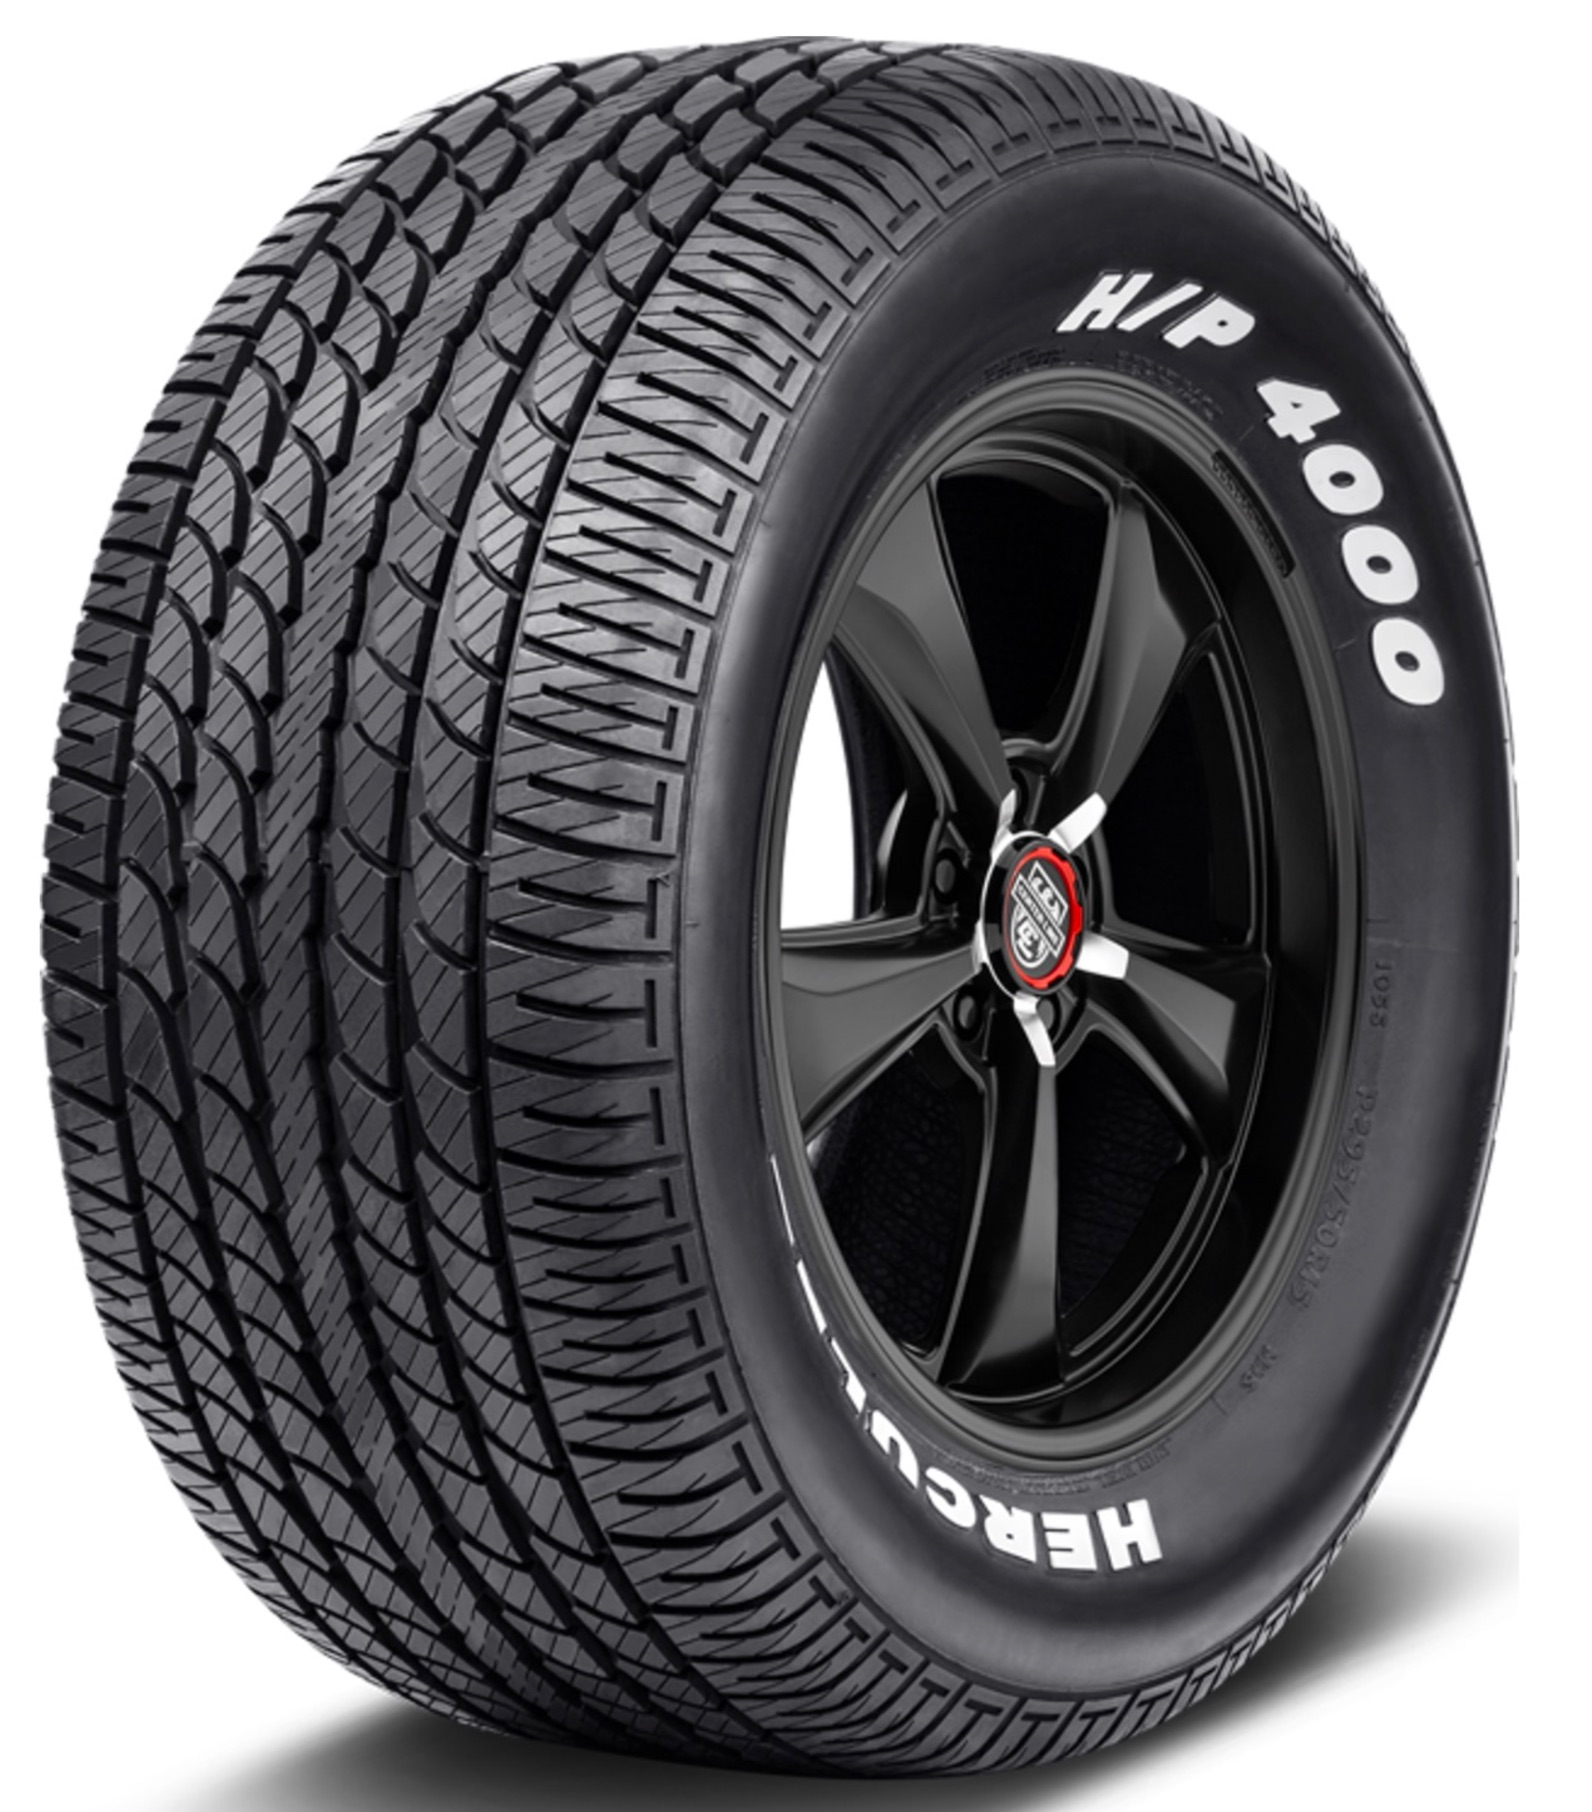 HP4000 (215/70 R14 – Non-directional)